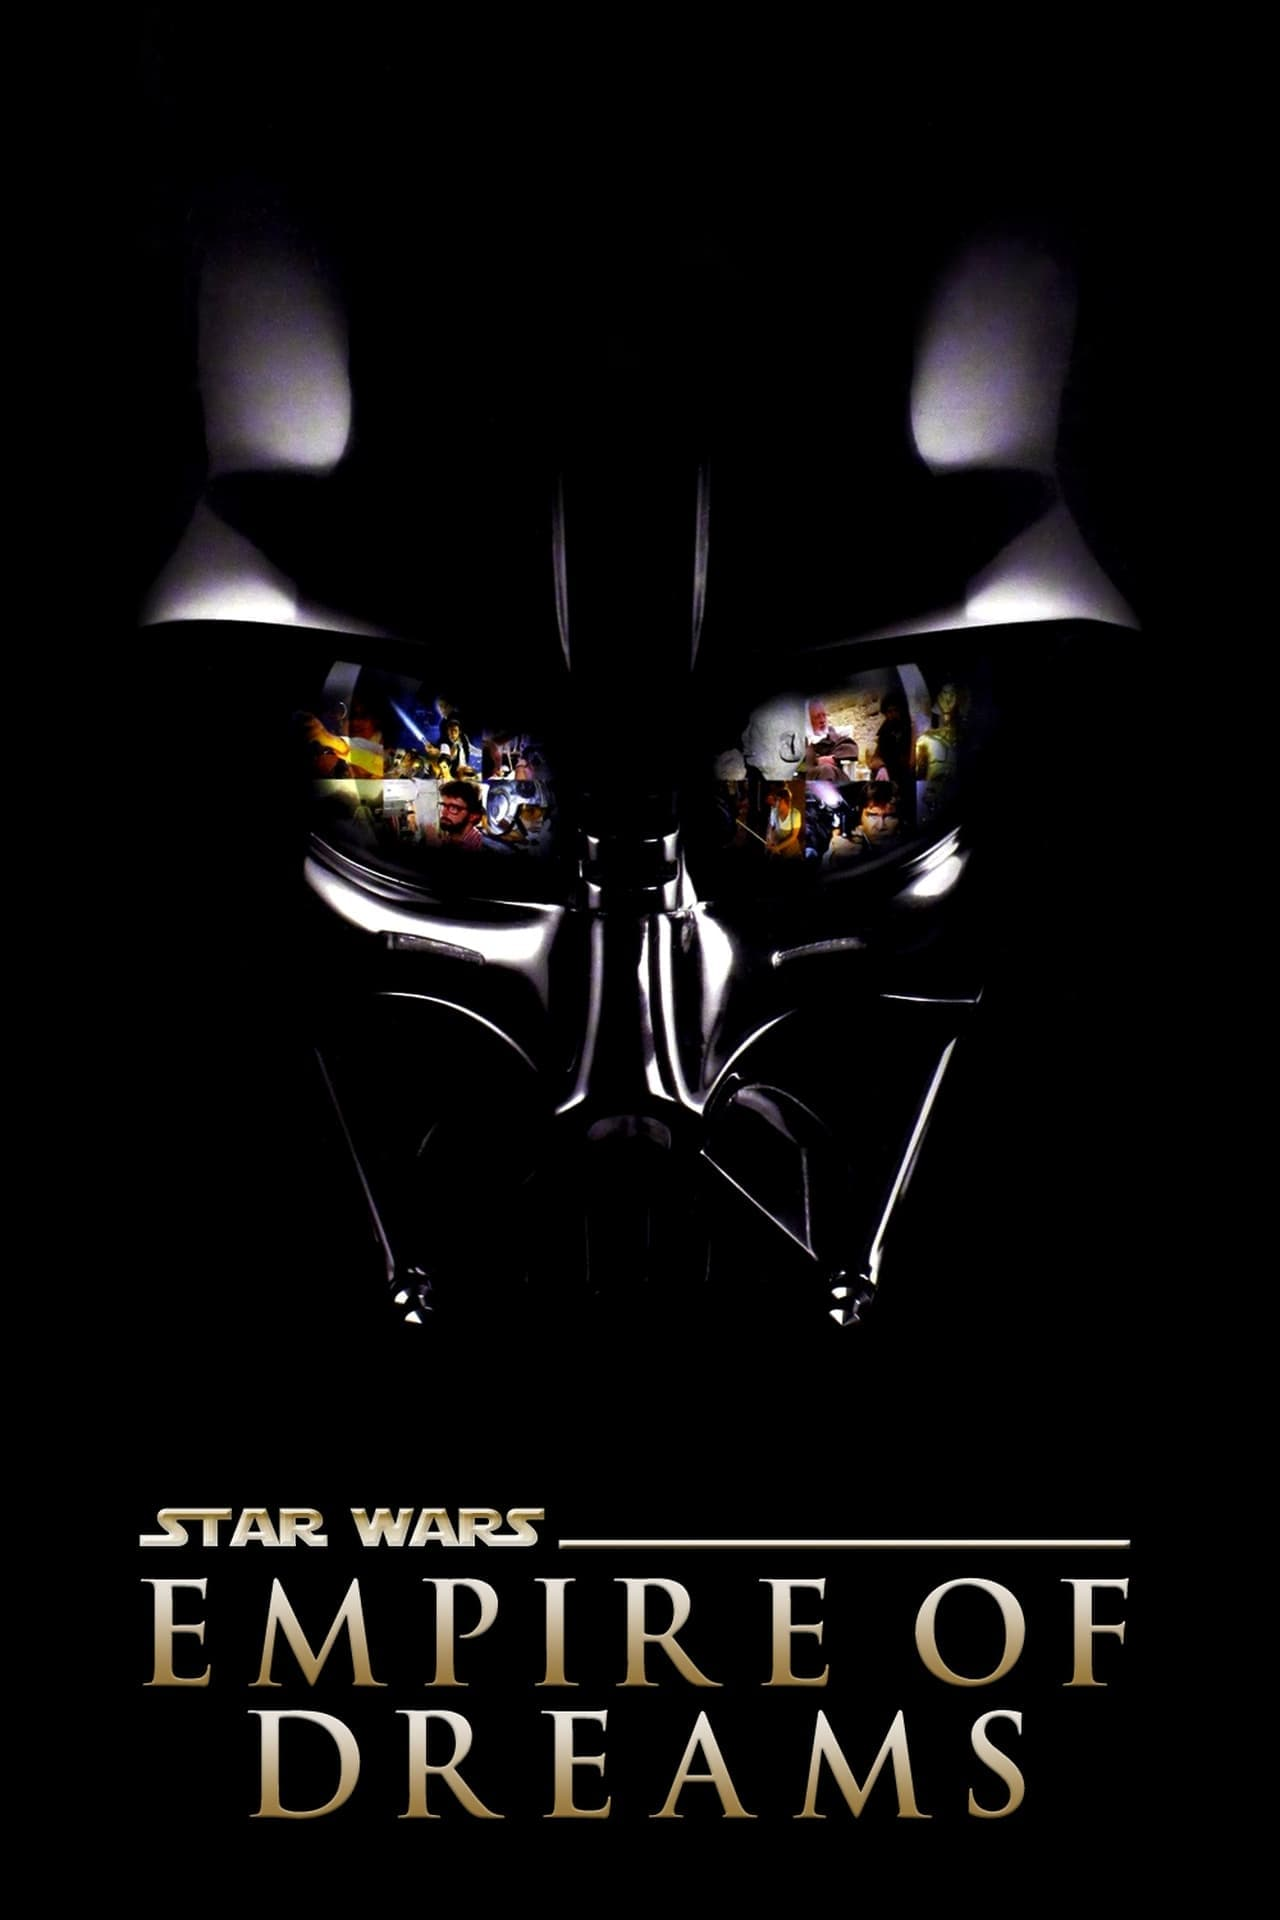 Empire of Dreams: The Story of the Star Wars Trilogy (2004)